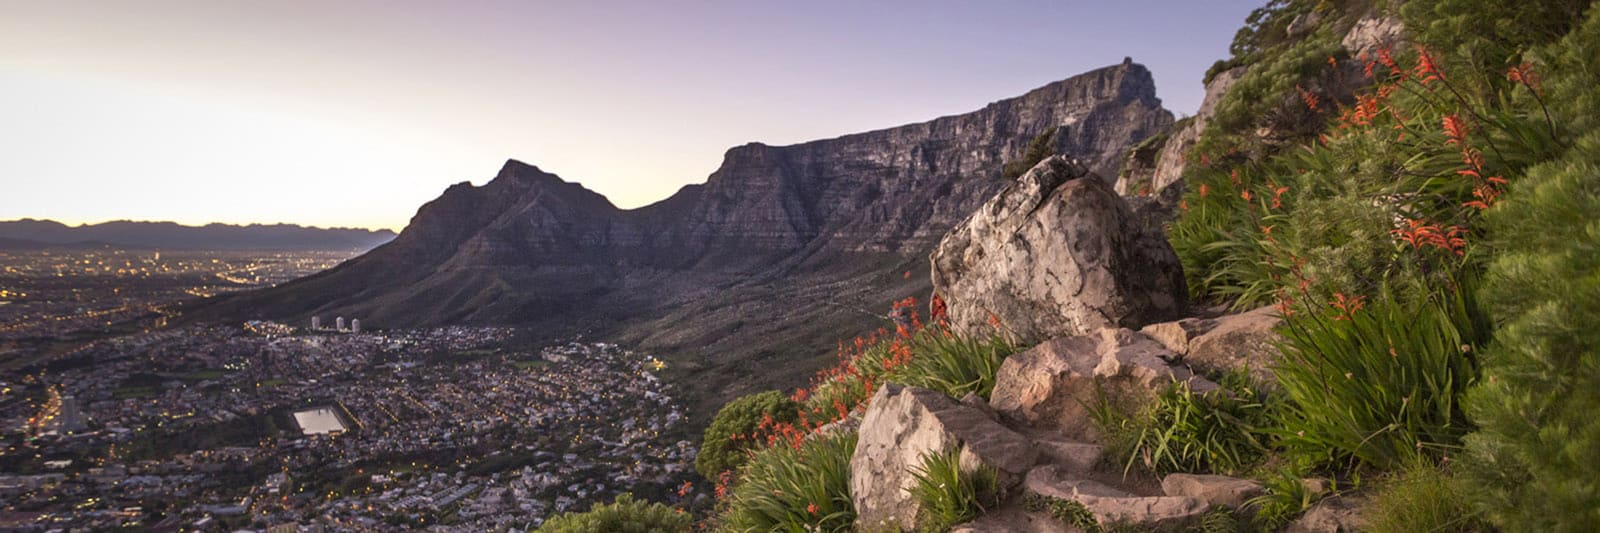 Cape Town Photo Tour: 5 Reasons the Mother City Inspires Photography